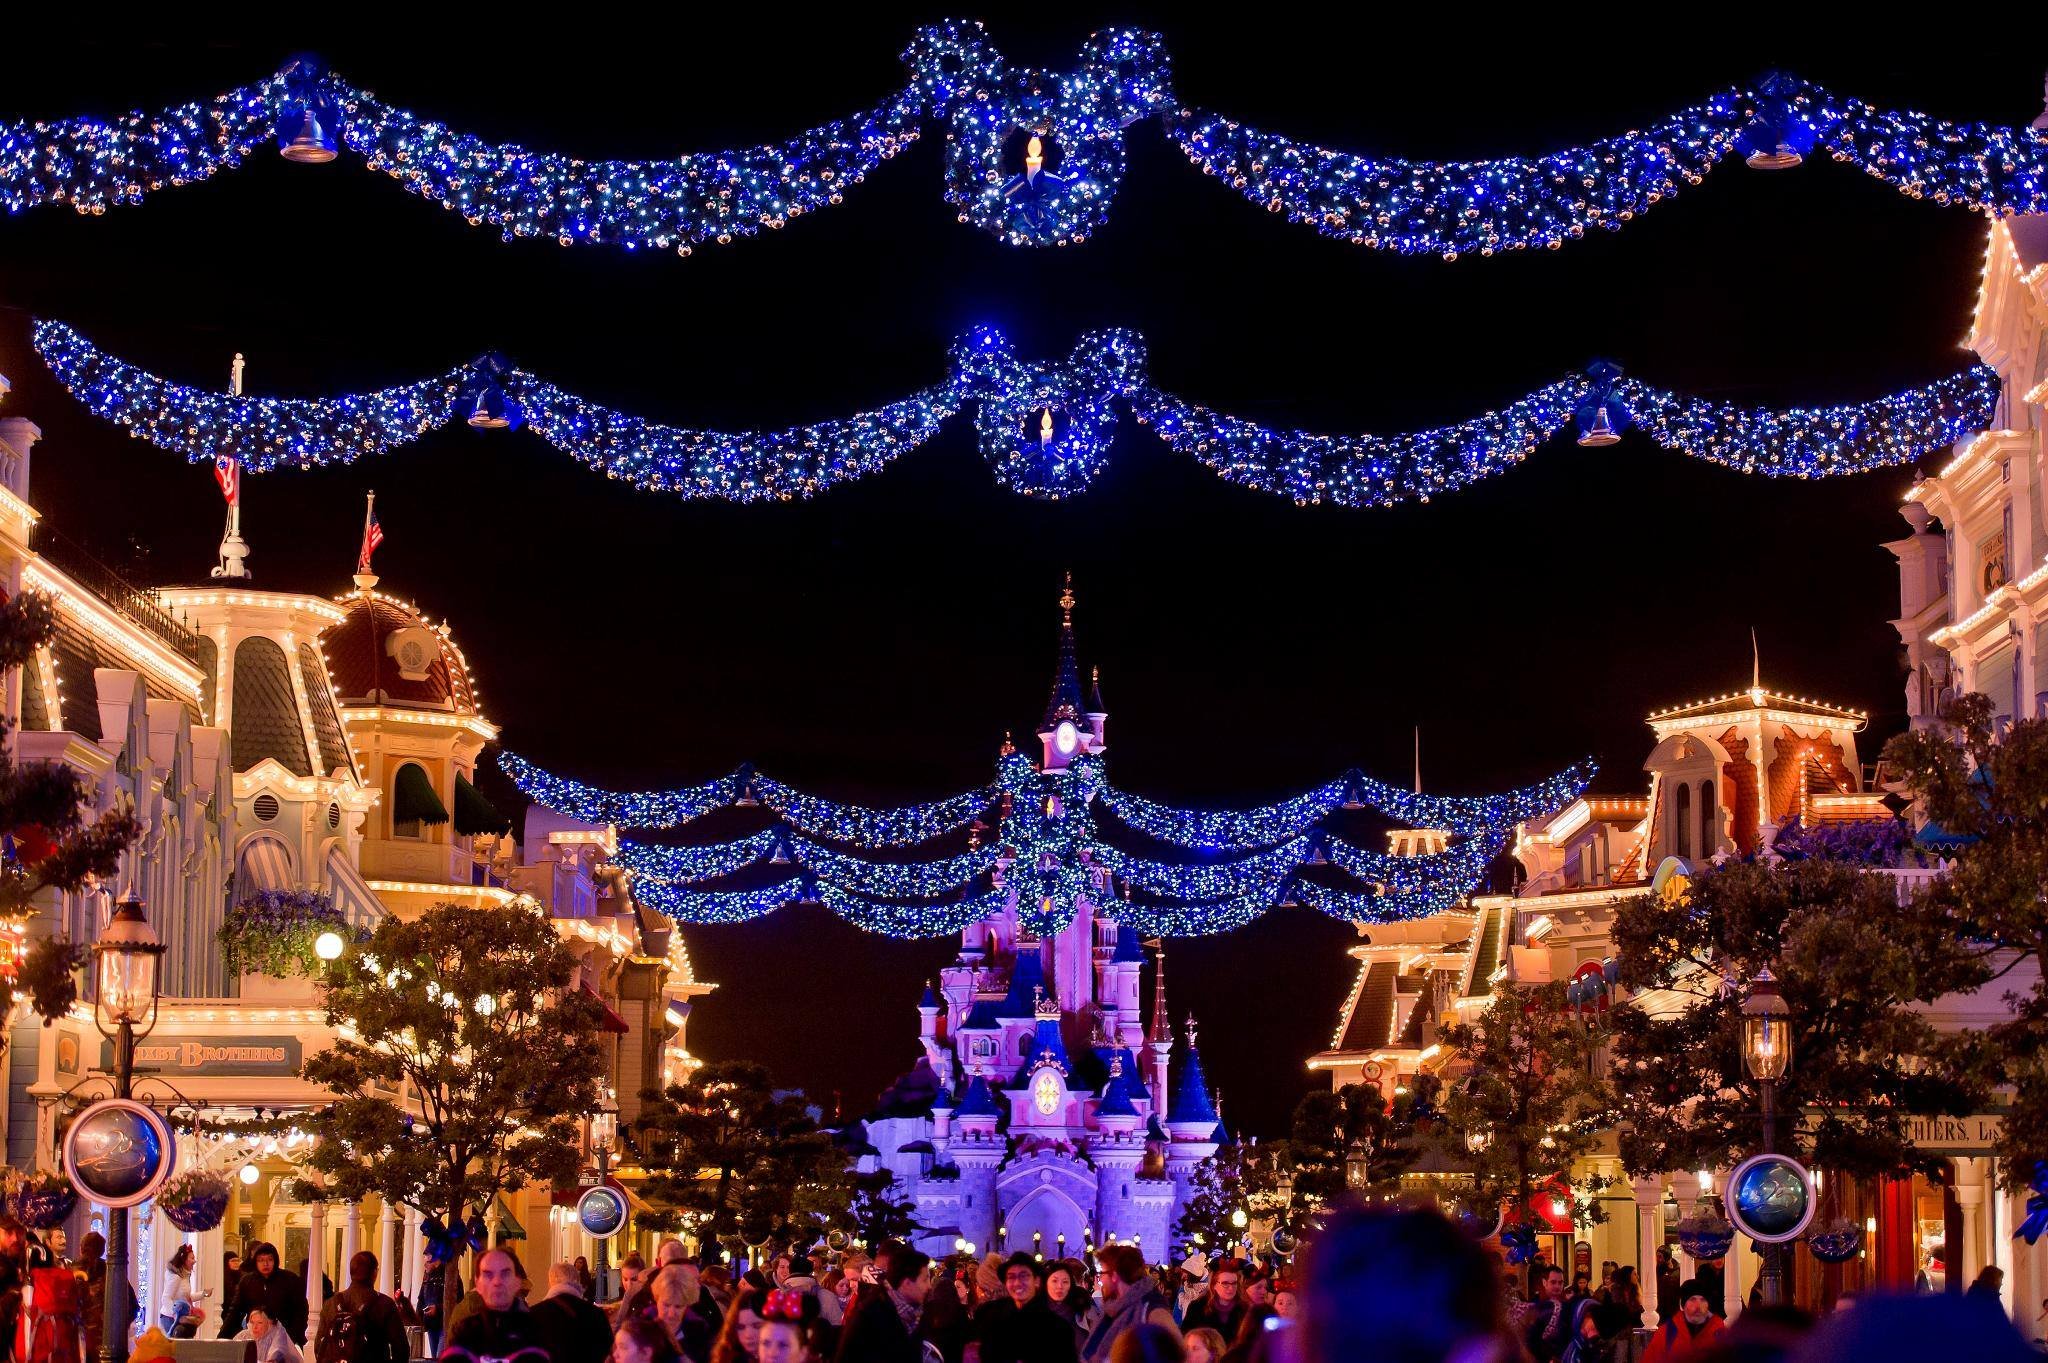 disneyland paris noel 2018 prix Disneyland Paris Christmas Season   Low Prices   Book with  disneyland paris noel 2018 prix